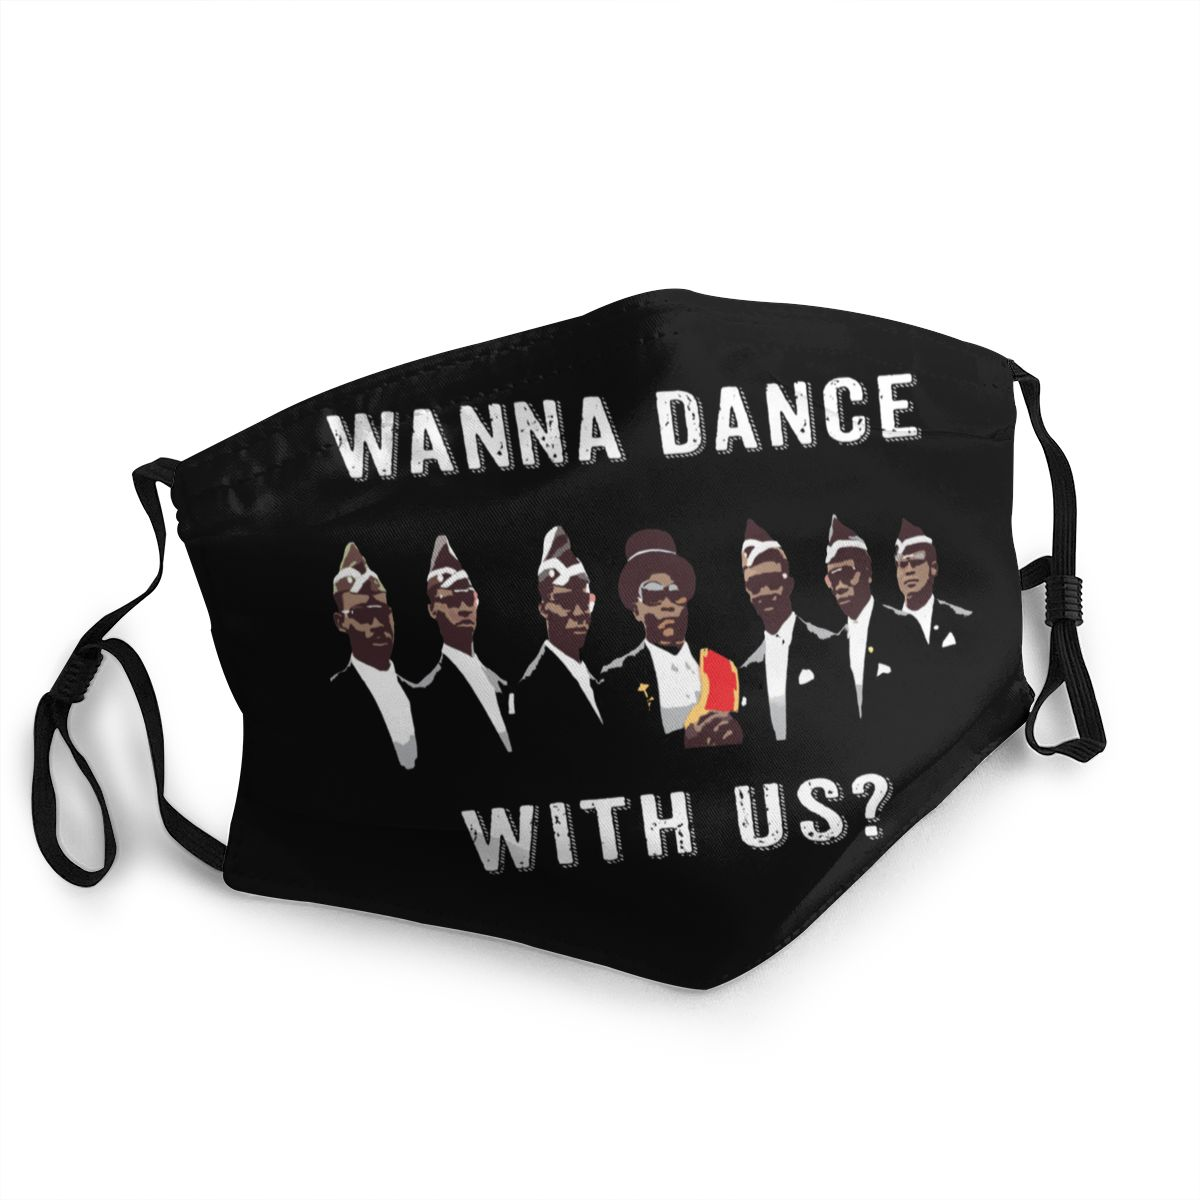 Wanna Dance With Us Coffin Dance Ghana Dance Team Non-Disposable Mouth Face Mask Dustproof Anti Haze Protection Cover Respirator